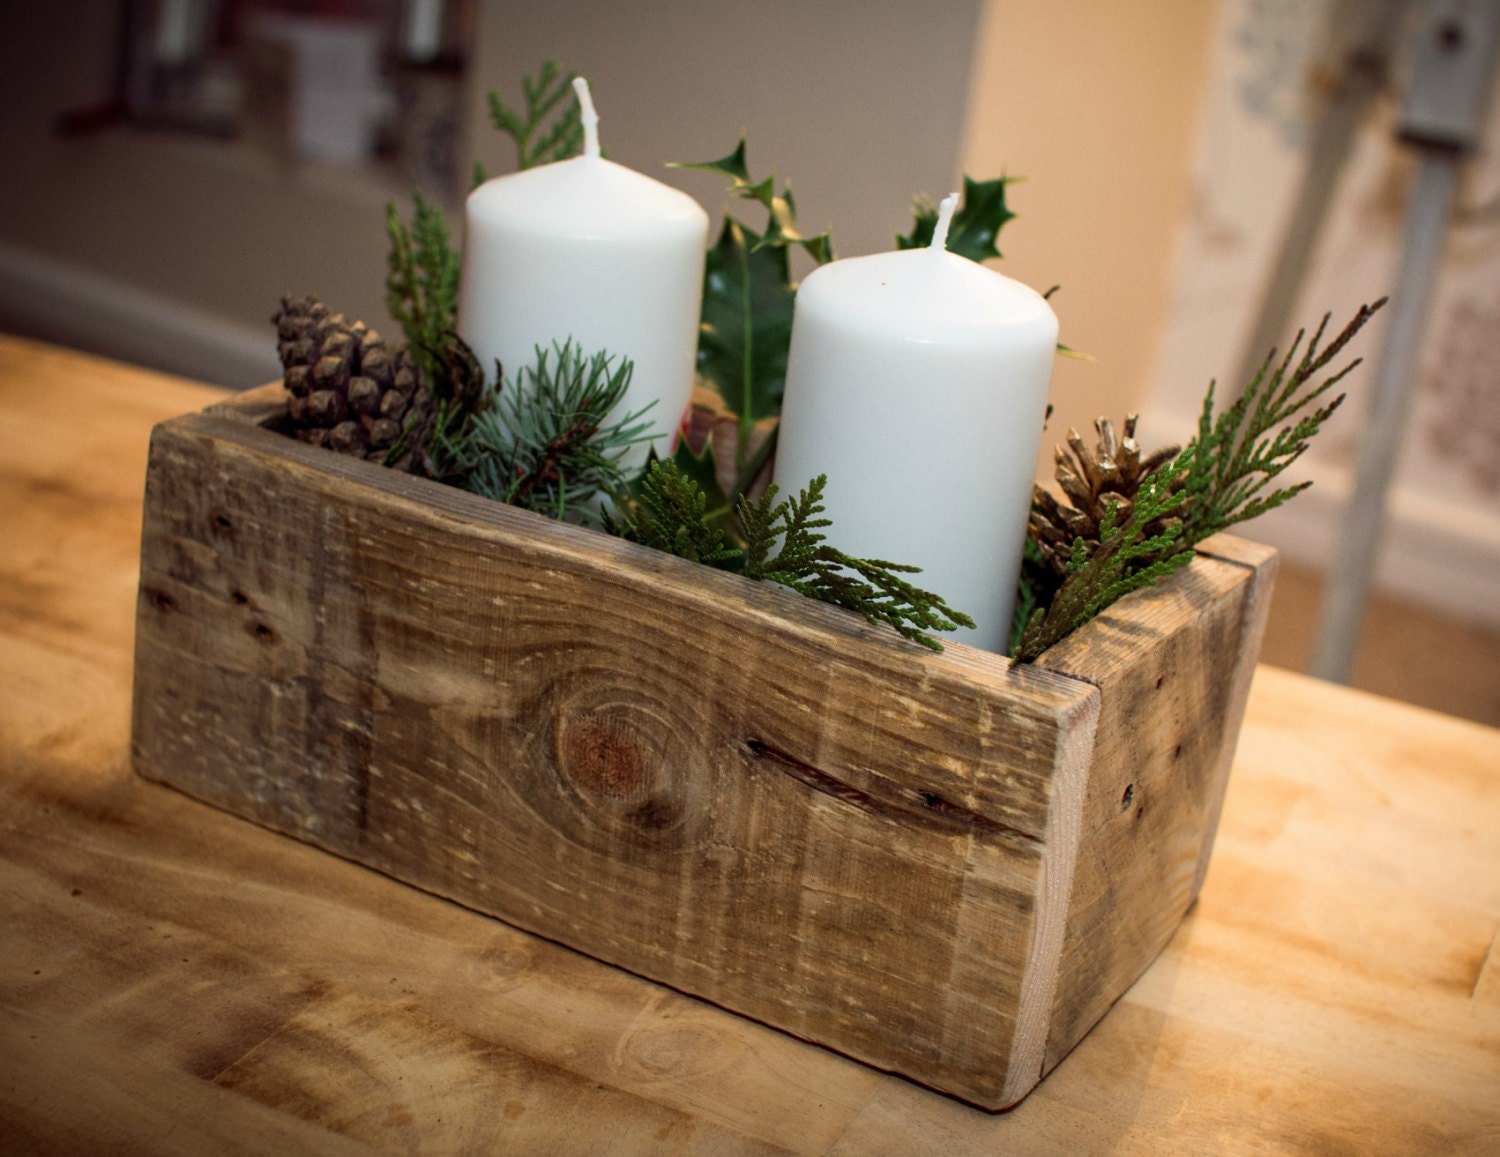 Wooden centerpiece or planter rustic design made from